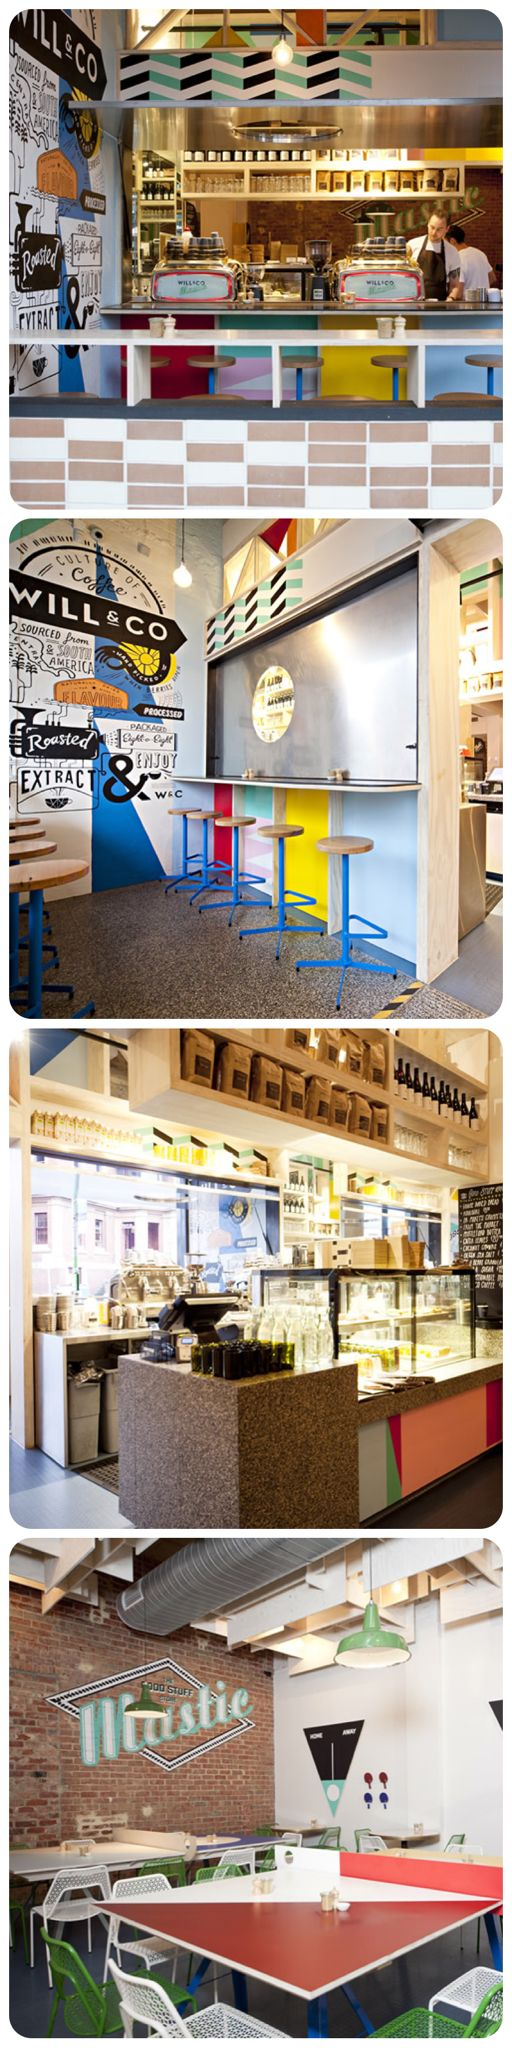 """. The building next to his lovely Hellenic Republic restaurant in Melbourne's Kew suburb was to be Sweet Hellenic, but is instead now home to the healthier daytime café Mastic — refined sugars and flours have been jettisoned in favour of """"grab-and-go"""" meals, cold-pressed juices, in-house yoghurt and smoothies."""